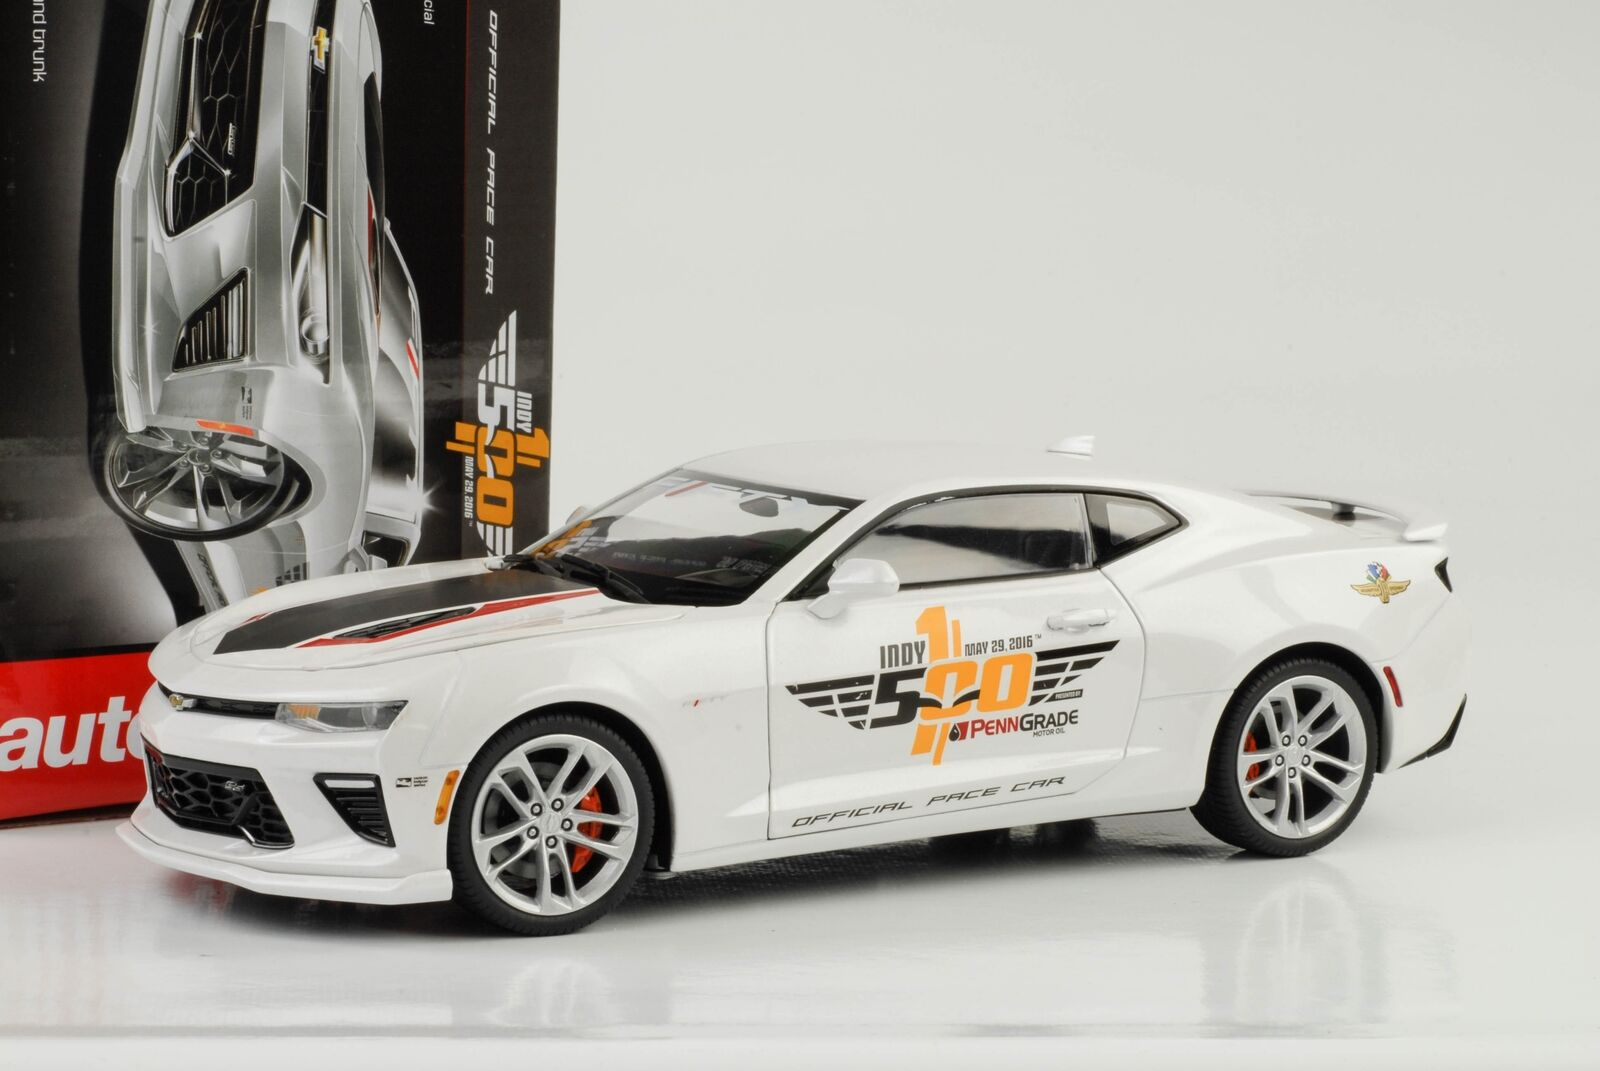 2017 Chevrolet Chevy Camaro SS Indy Indy Indy pace car 50th anniversary 1 18 Auto World d1b38b